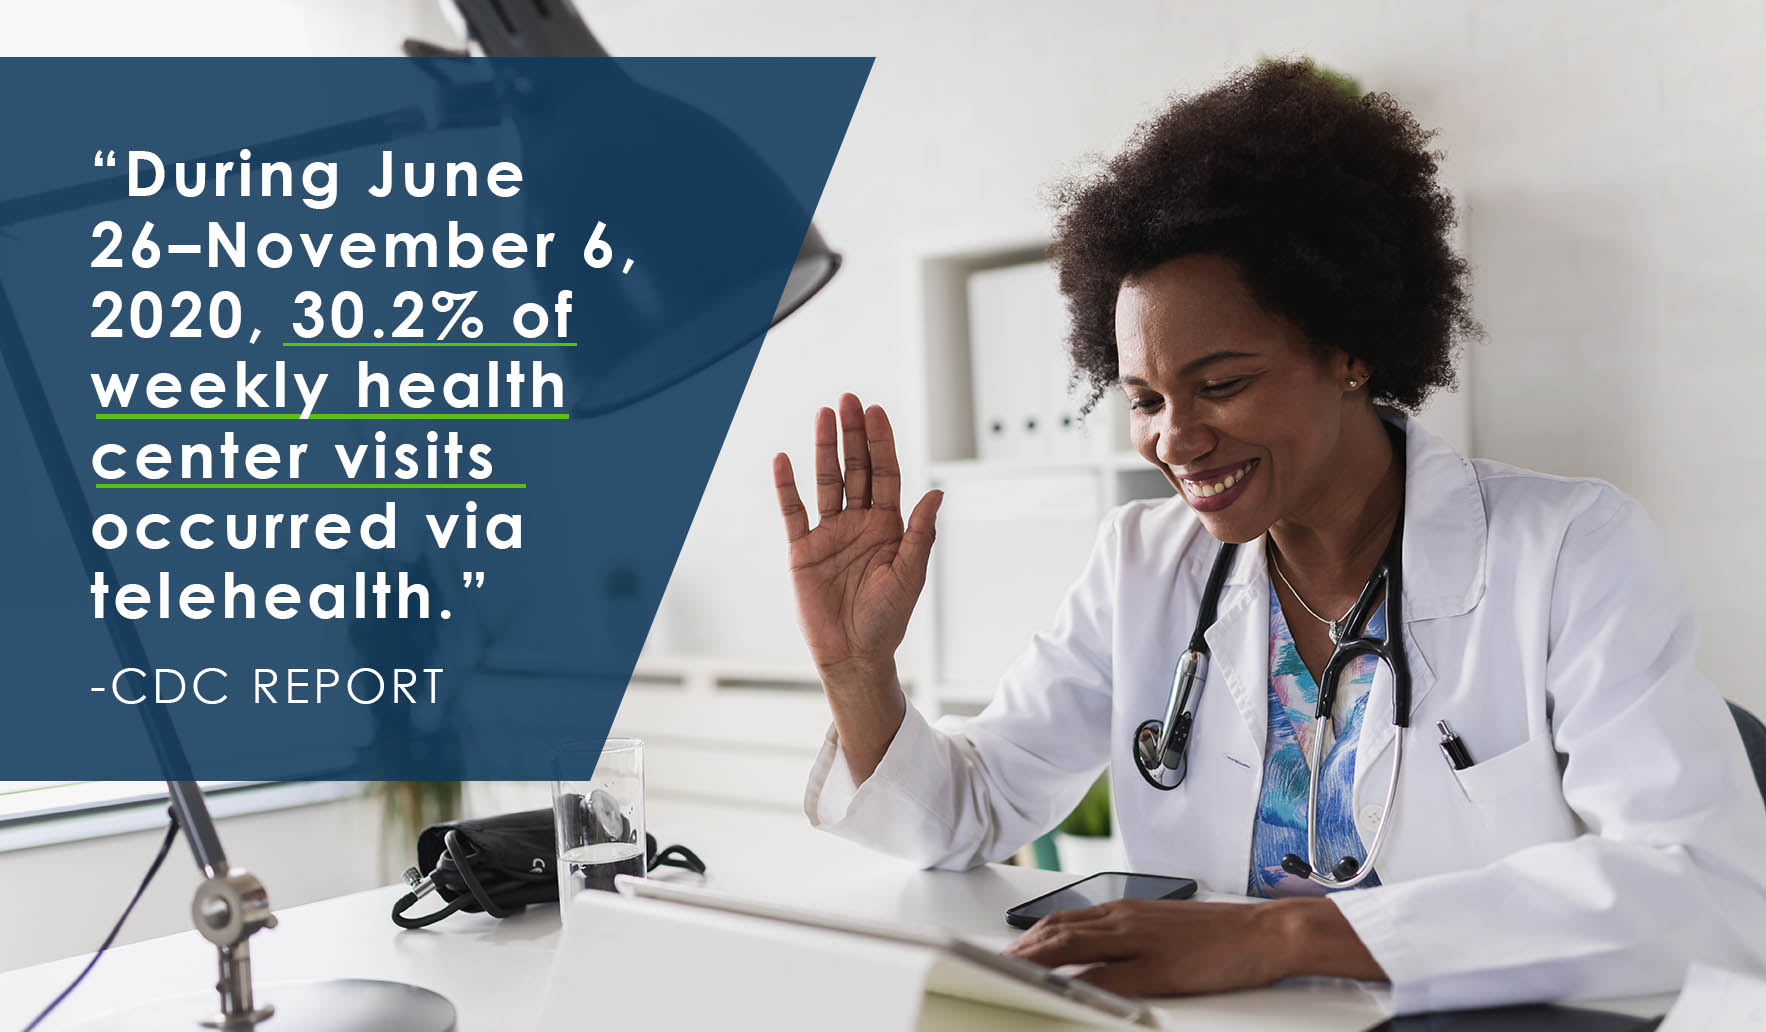 Doctor speaks to patient during telehealth virtual appointment